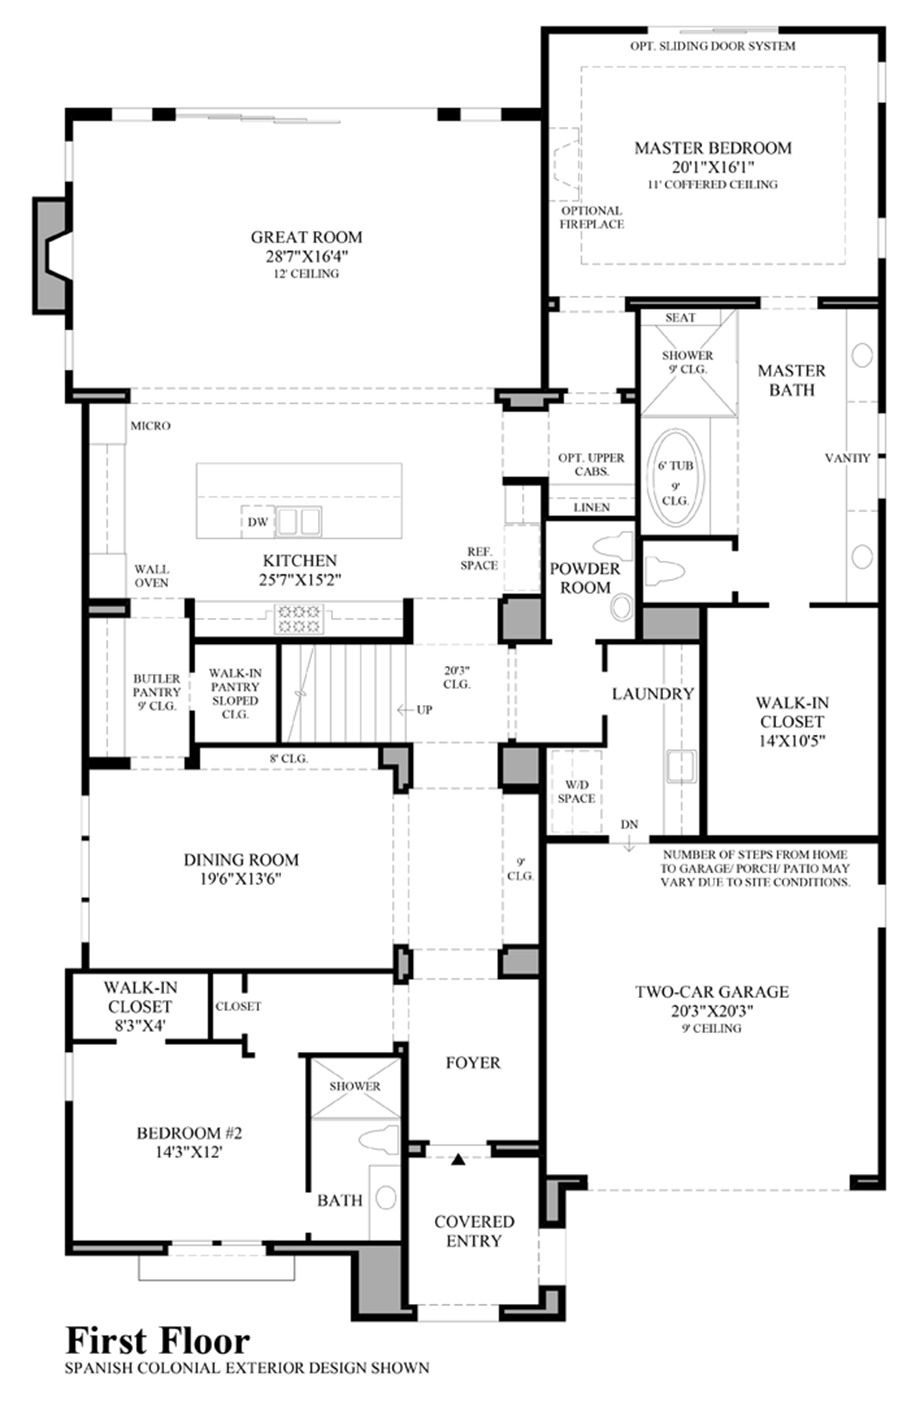 1st Floor Floor Plan Floor Plans Ranch House Floor Plans Floor Plans